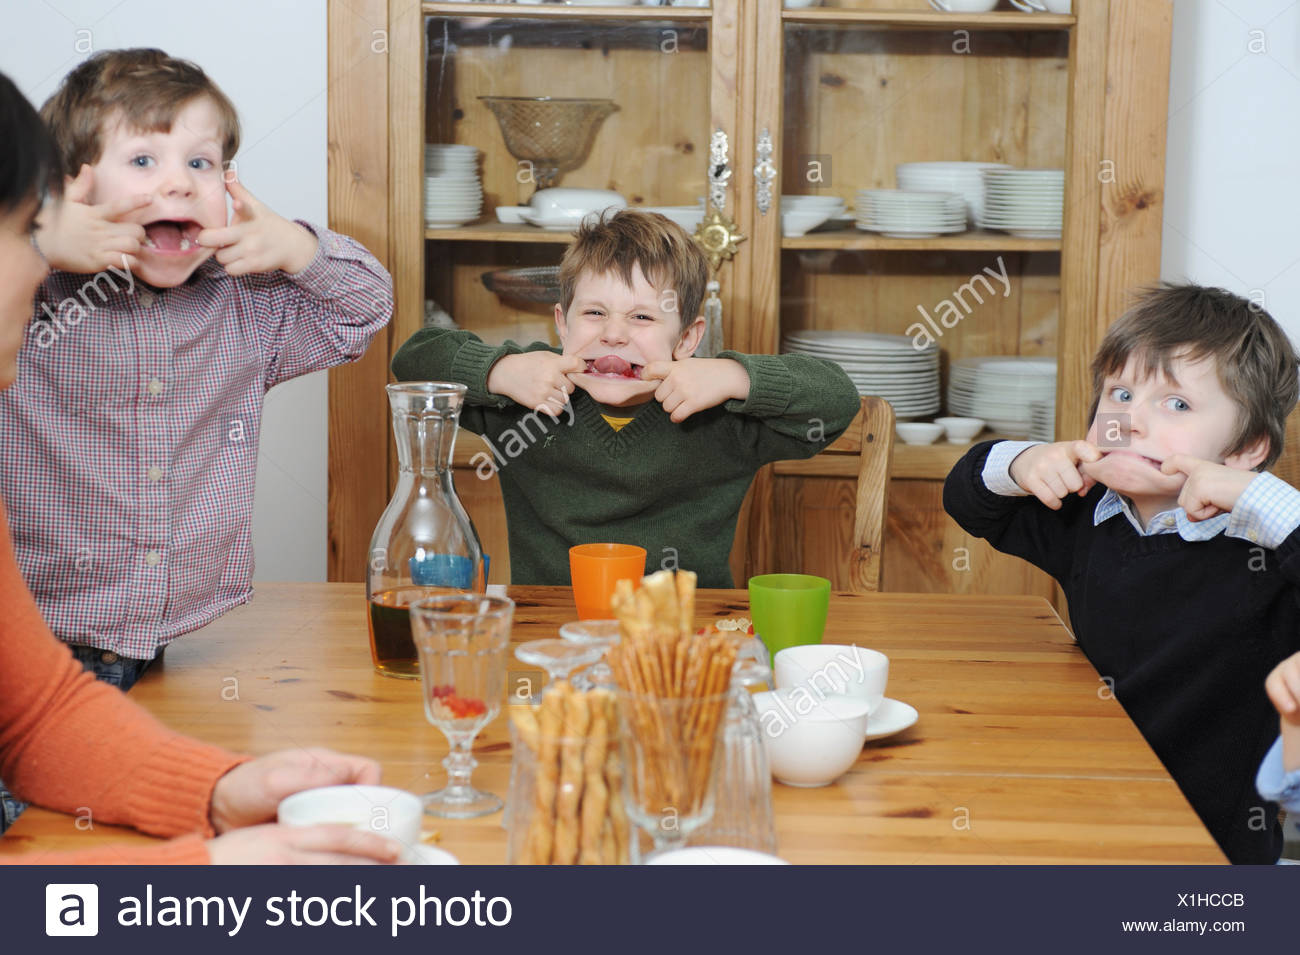 Boys making faces at table - Stock Image